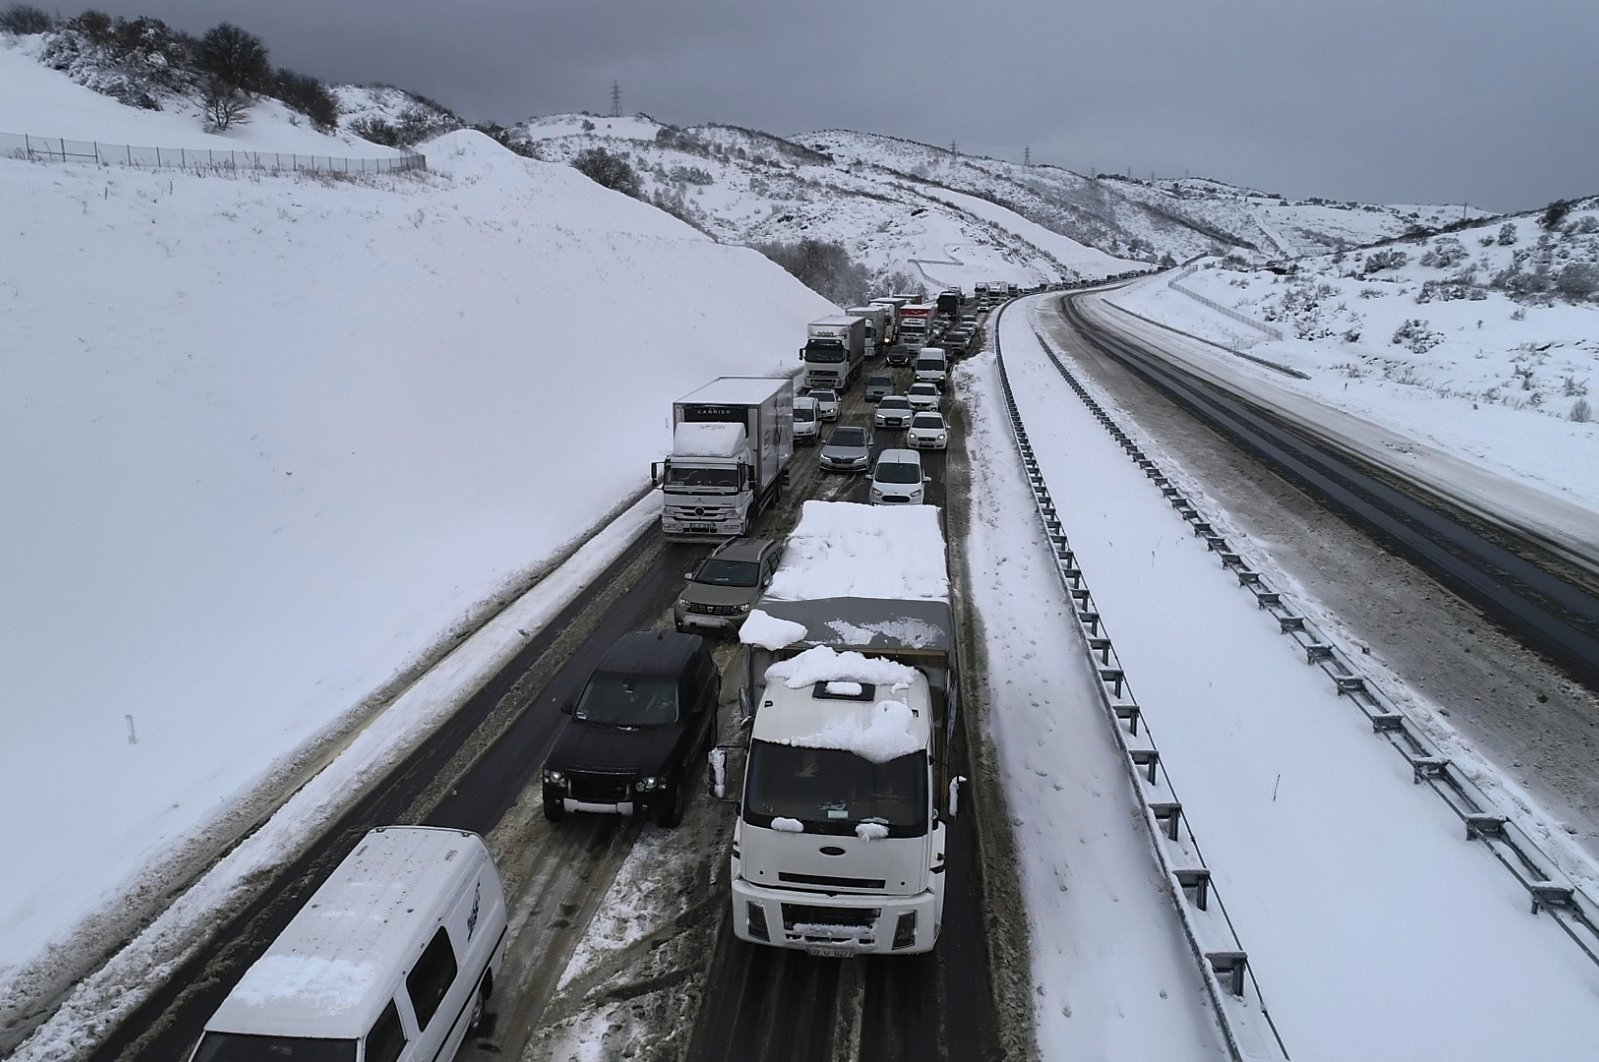 Vehicles stranded on a road in Balıkesir, western Turkey, Feb. 16, 2021. (DHA PHOTO)